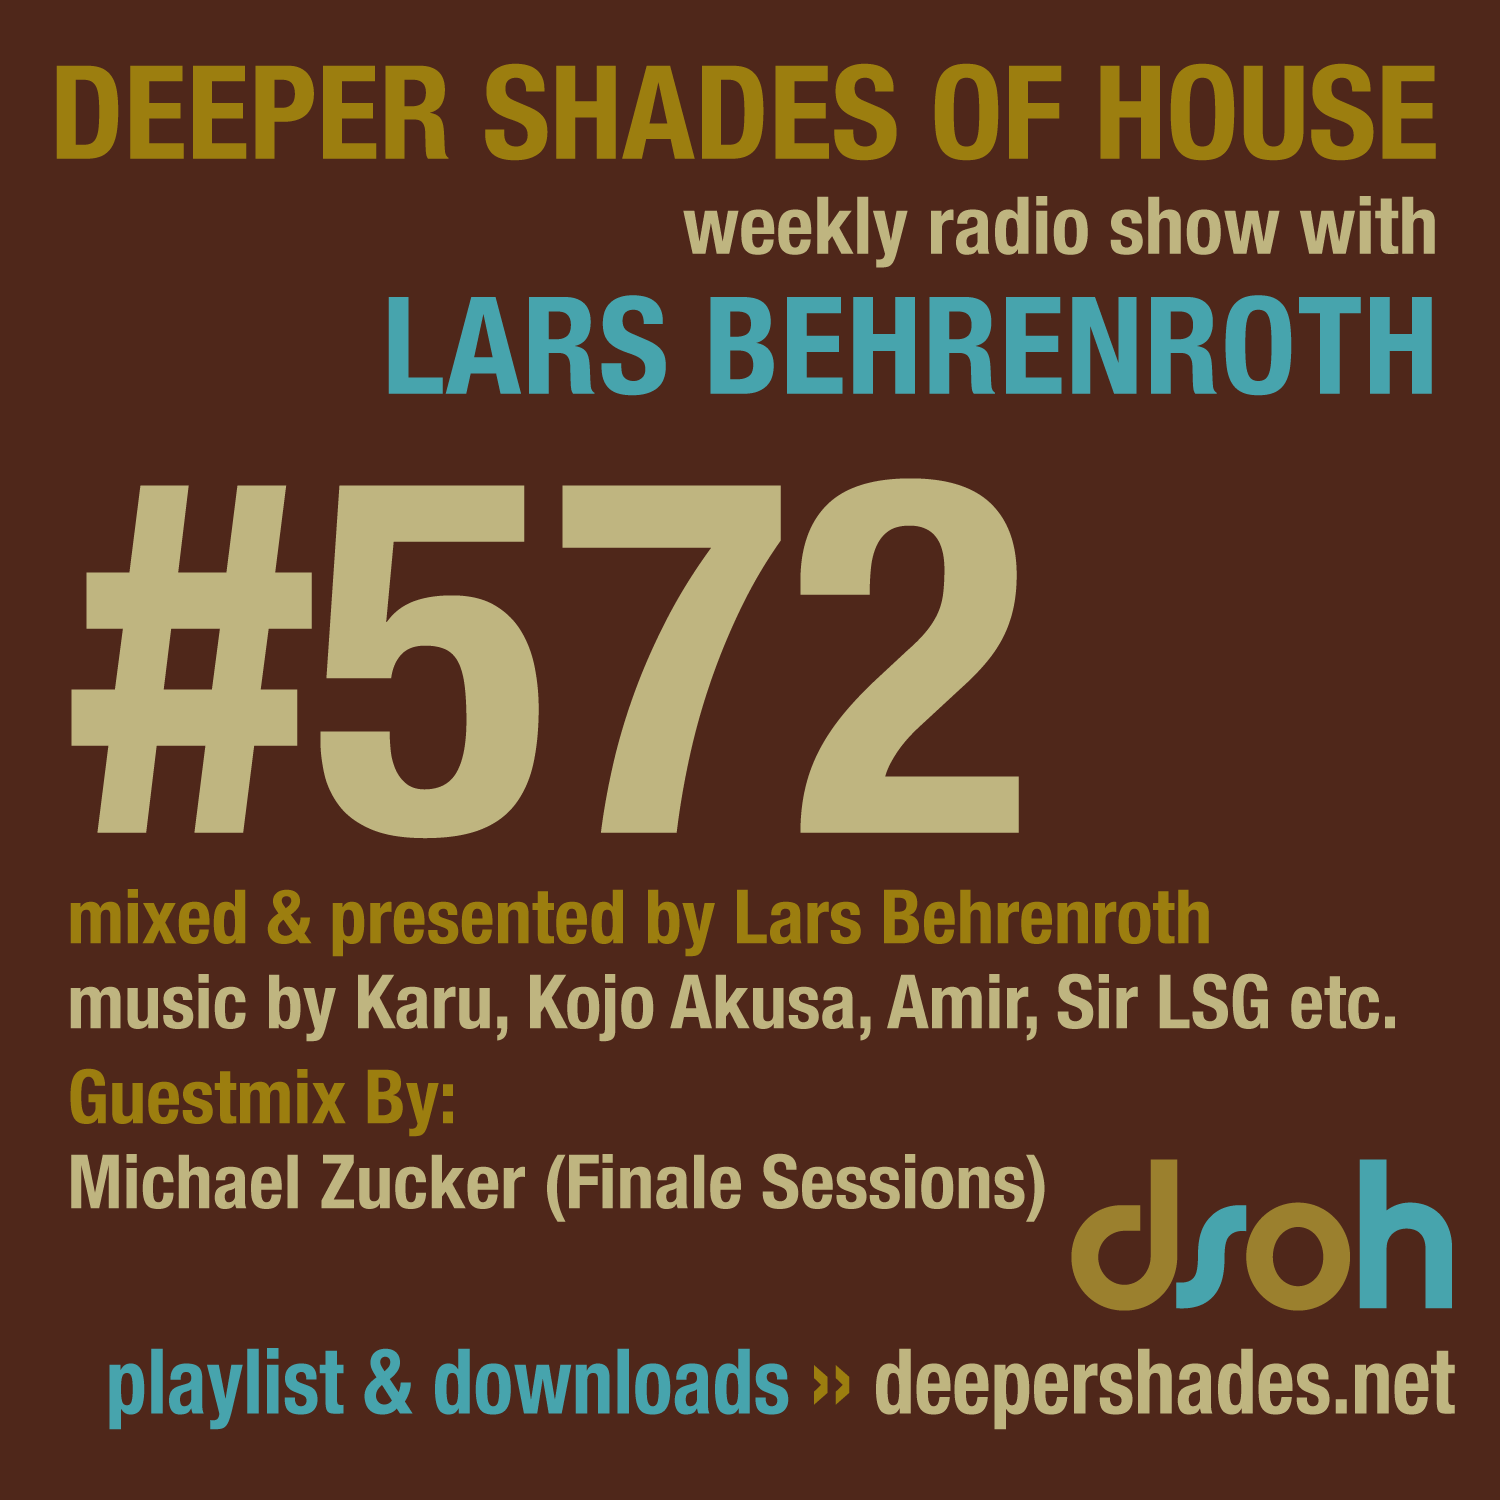 Deeper Shades Of House 572